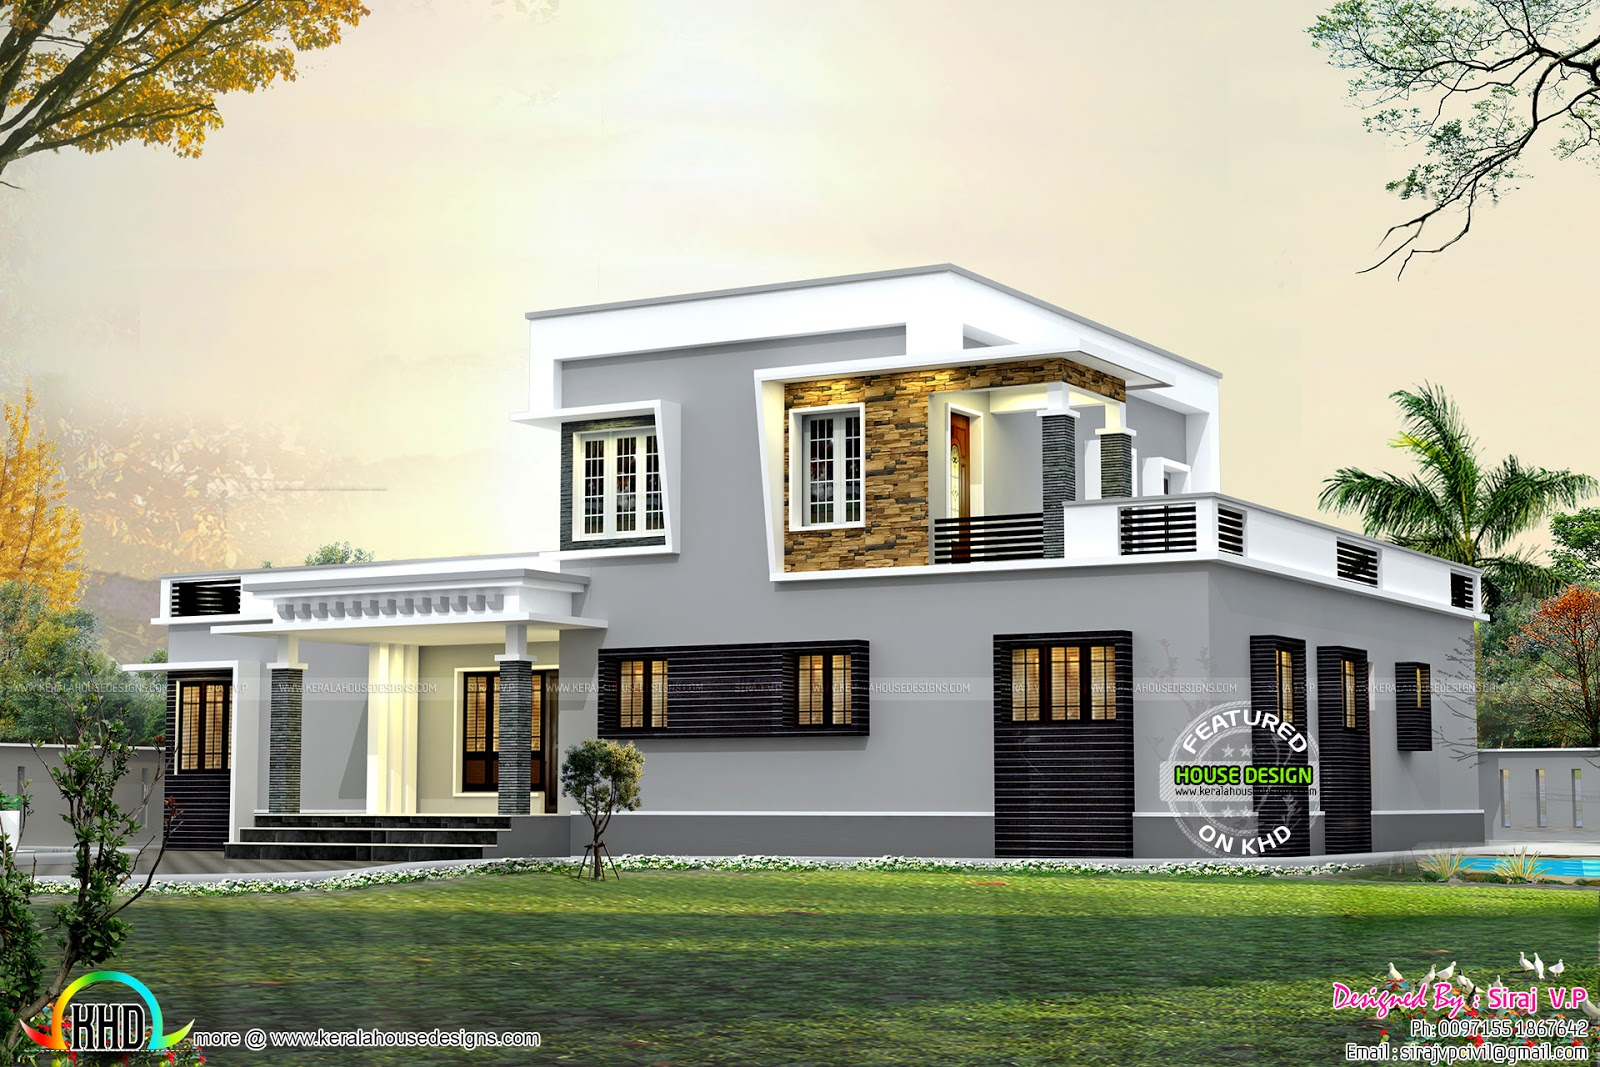 200 ft small modular homes floor plans html with 1800 Sq Ft Flat Roof Small Budget Home on 2500sqft Modern House besides 1dd4bc79439a9e57 Craftsman Style Home Interiors 1920 Style Home Plans furthermore A0a0ada4ede06362 Log Cabin Flooring Ideas Log Cabin Homes Floor Plans Prices as well 22a646455237f581 Contemporary Chalet House Plans Mountain Chalet House Plans moreover Small Unique Homes.